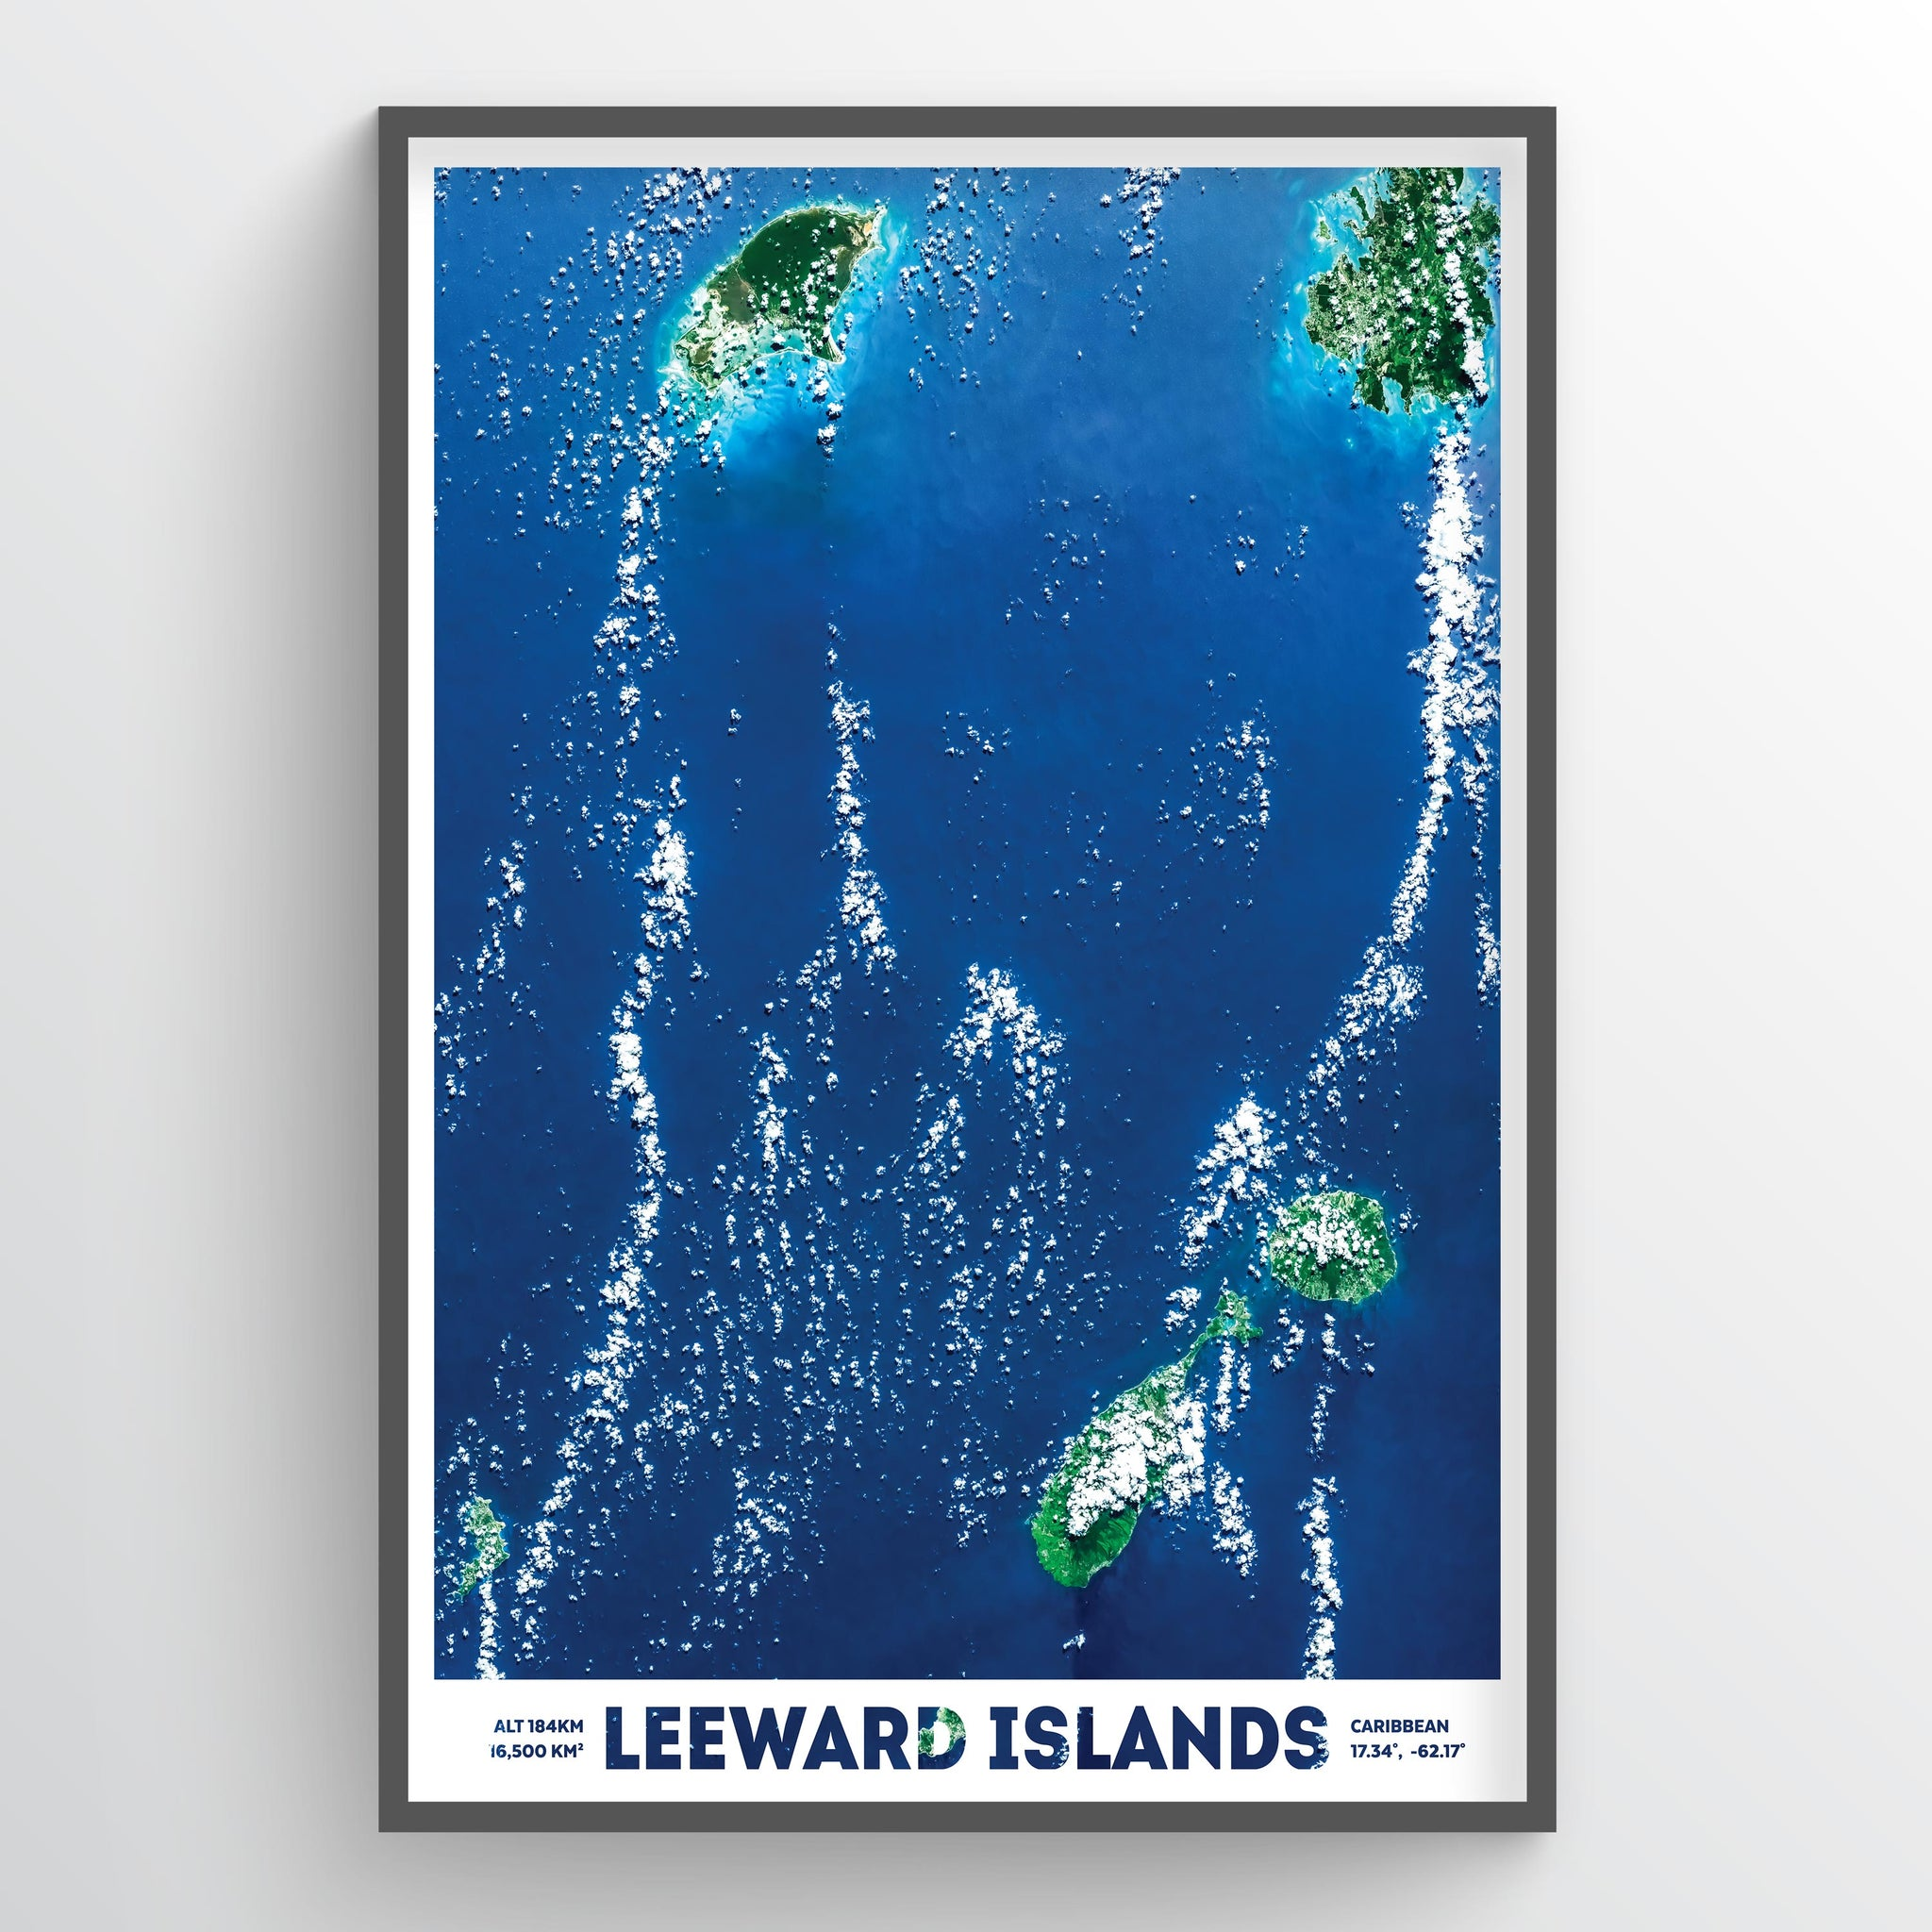 Leeward Islands - Fine Art